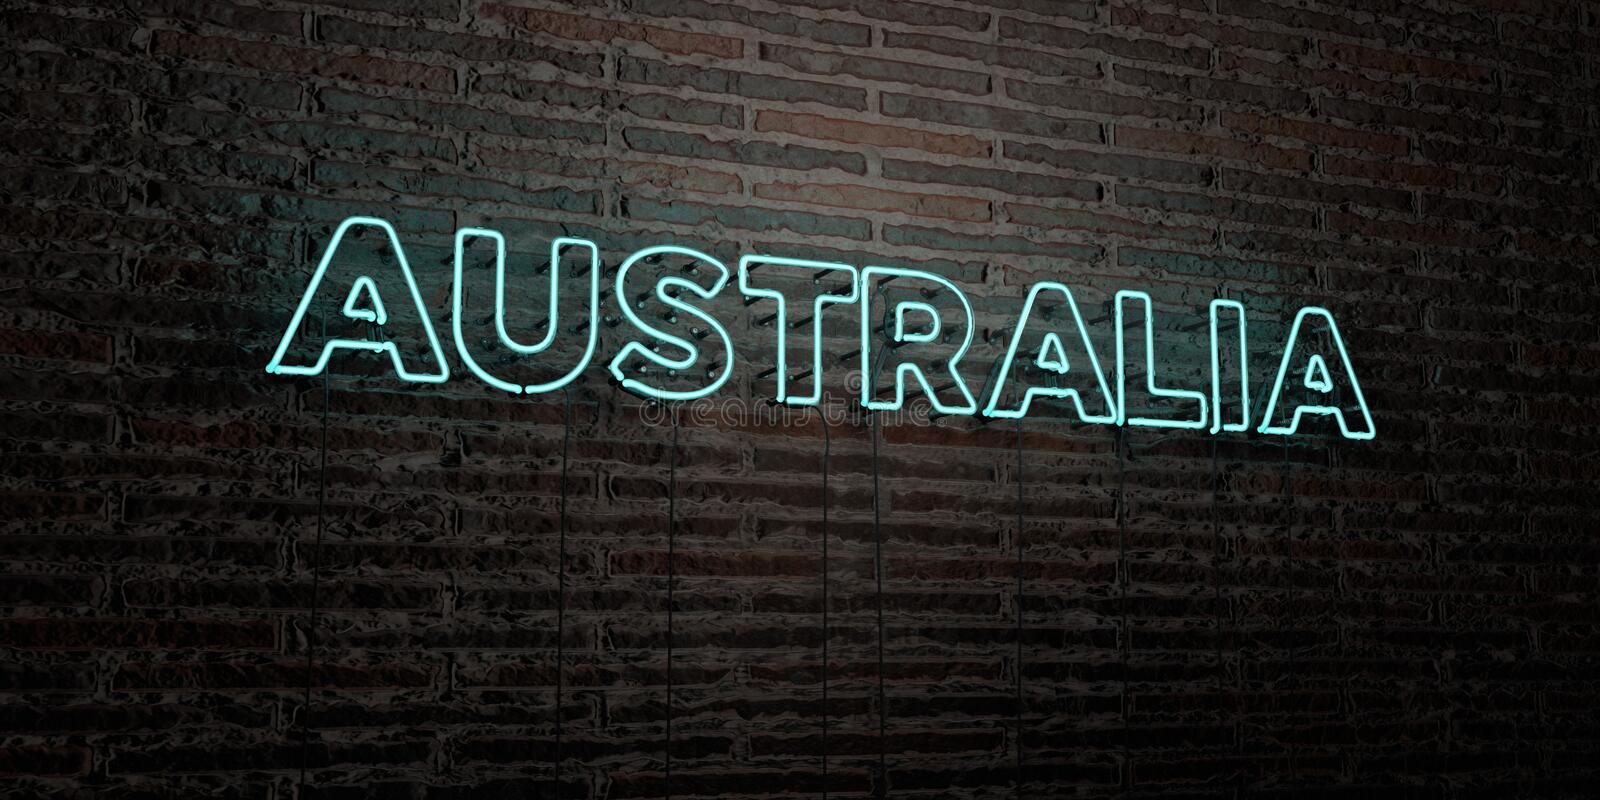 AUSTRALIA -Realistic Neon Sign on Brick Wall background - 3D rendered royalty free stock image royalty free illustration